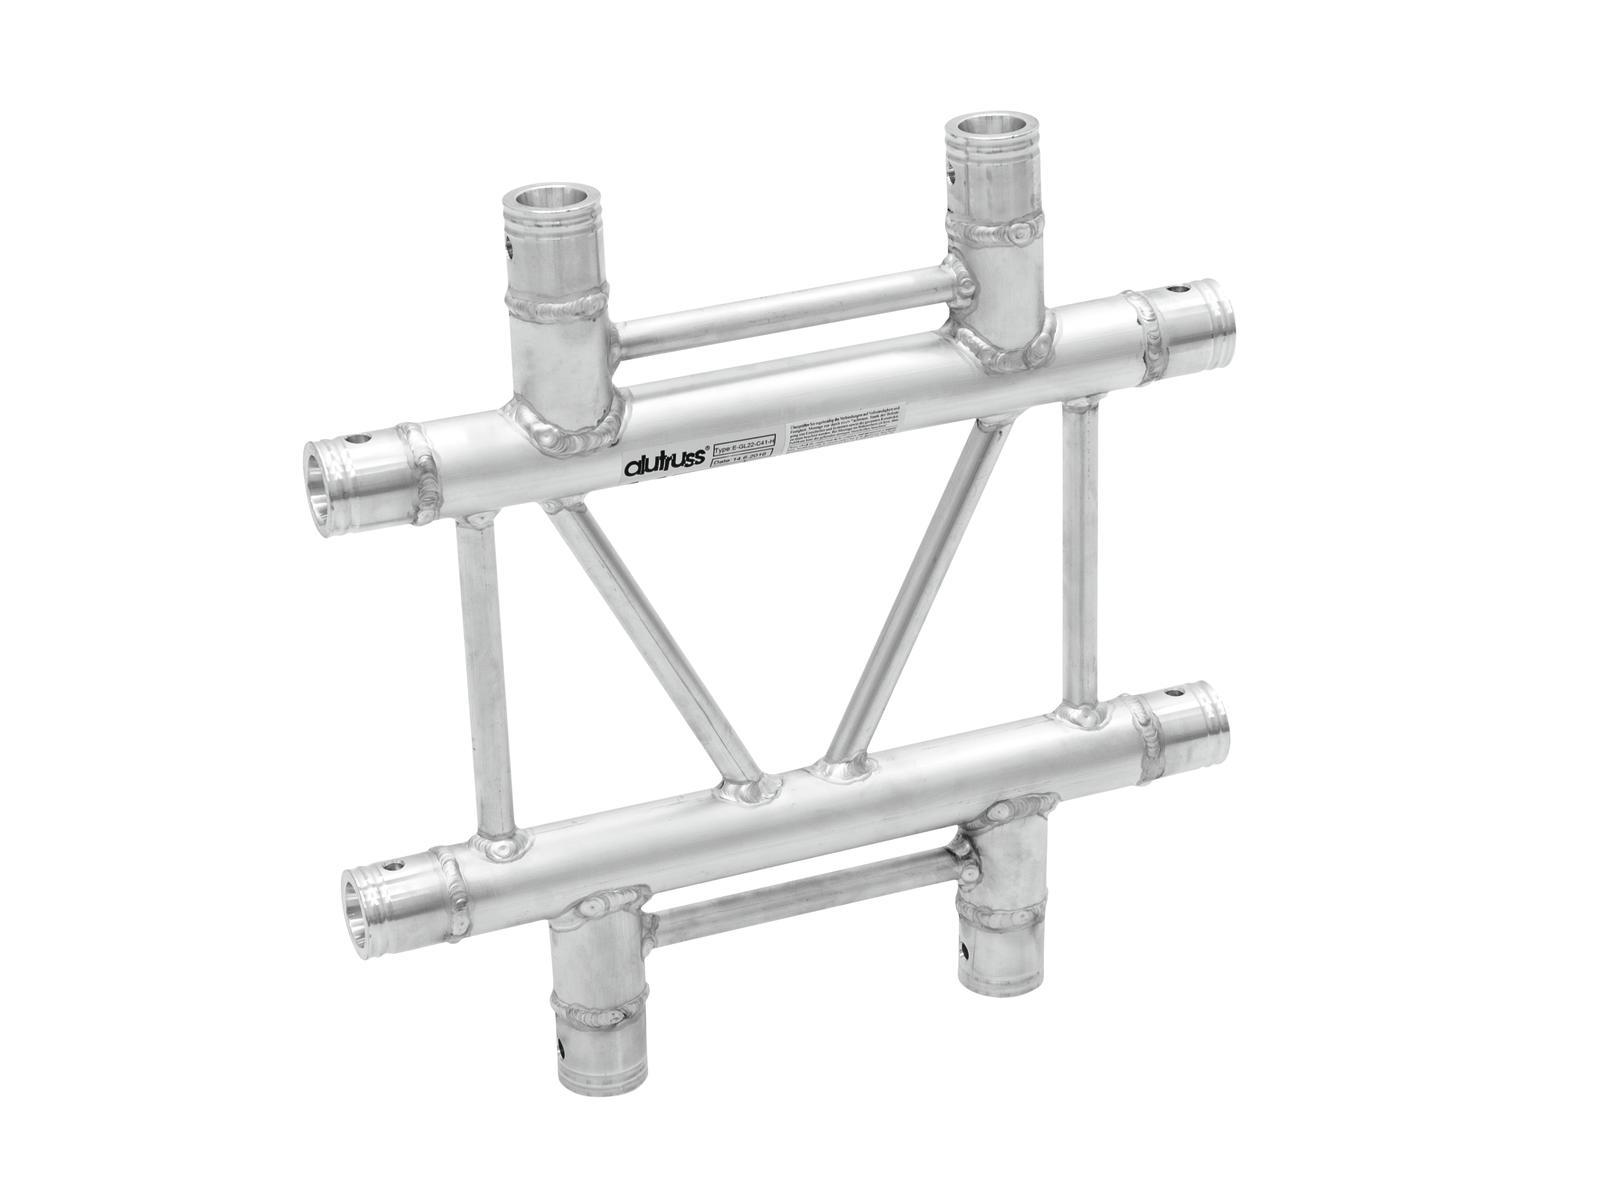 Bilock E-GL22 C41-H 4-Way Cross